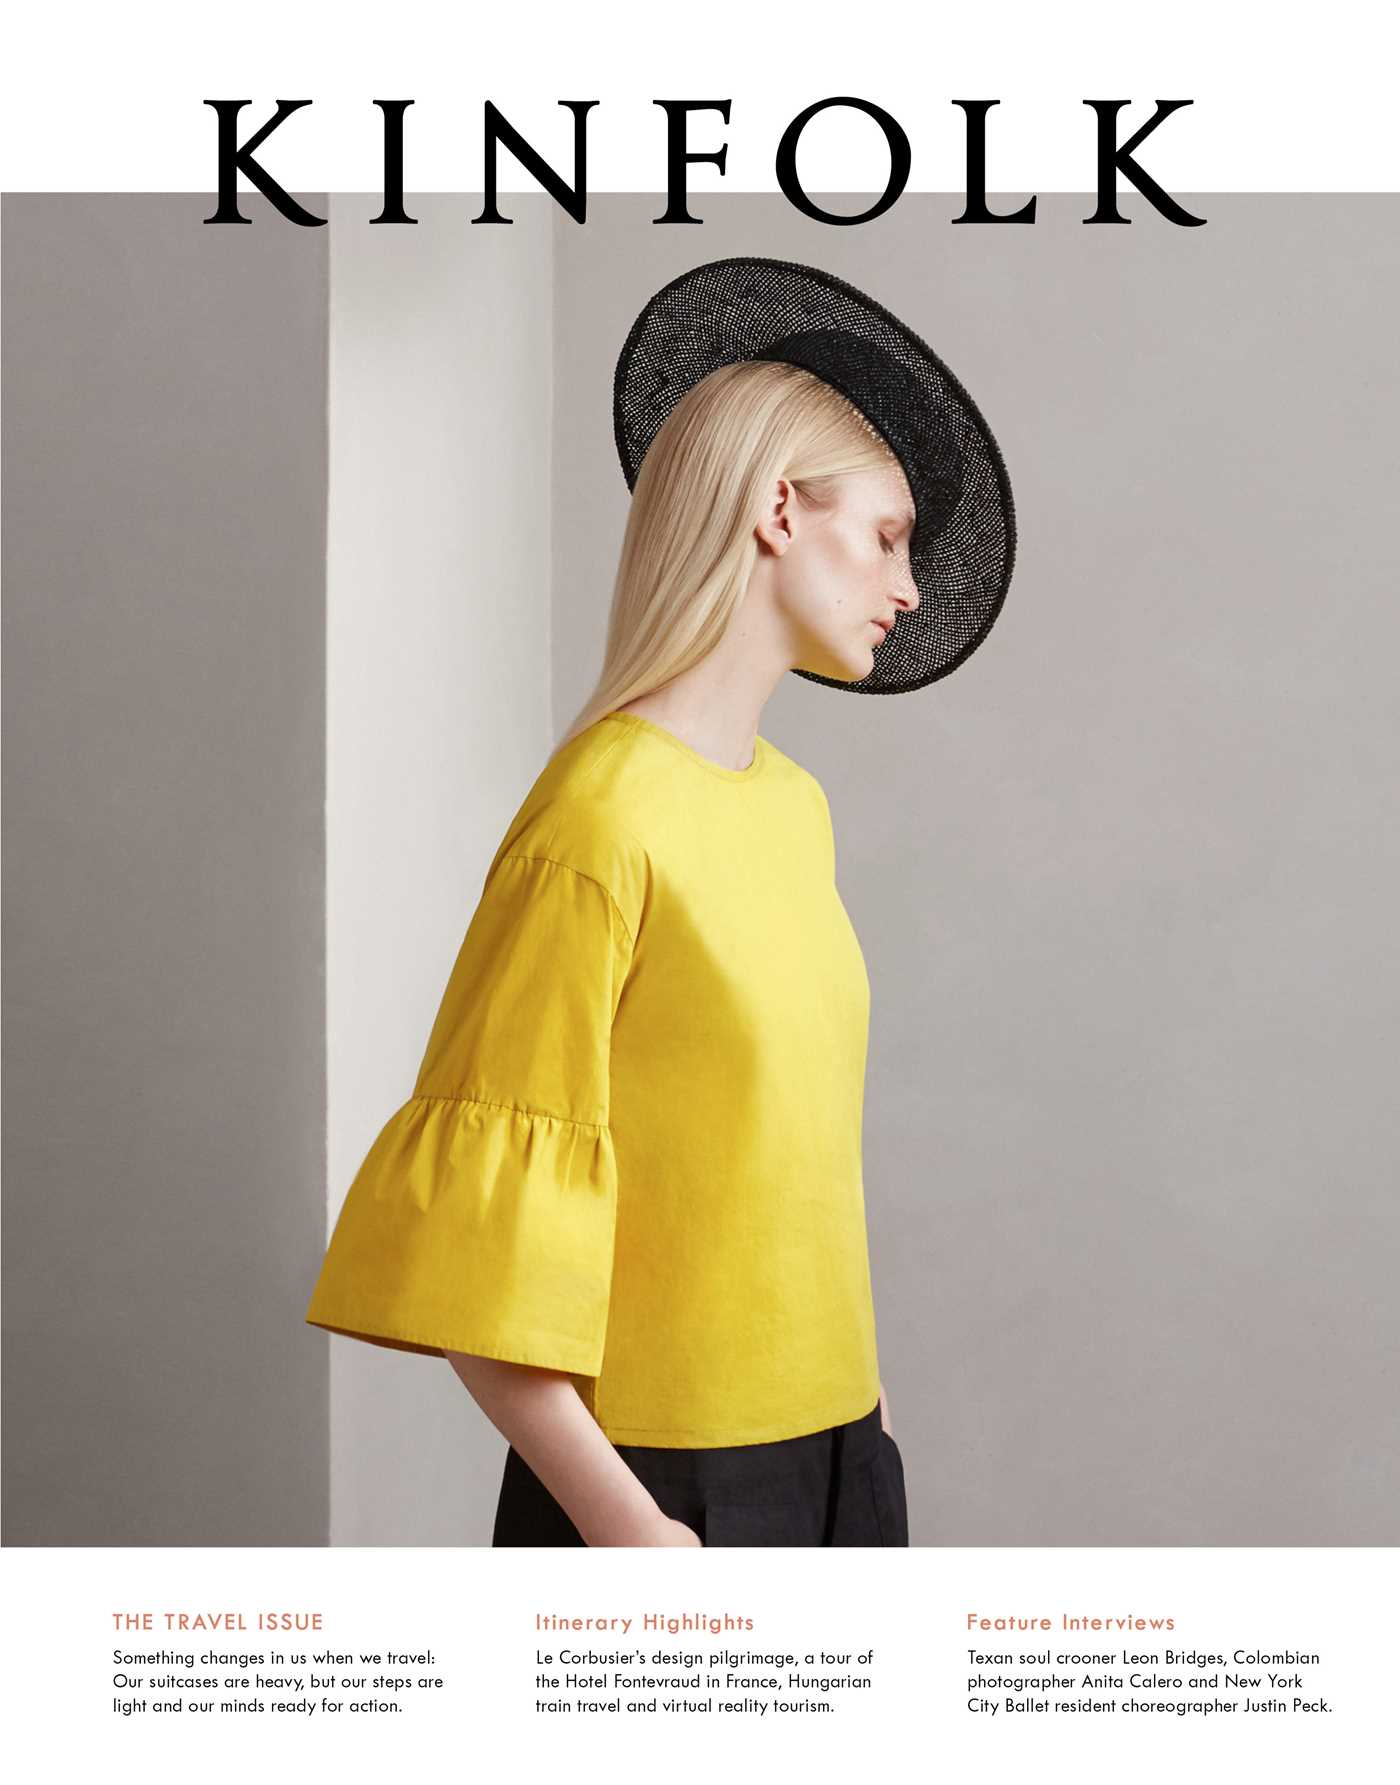 Kinfolk volume 20 9781941815236 hr